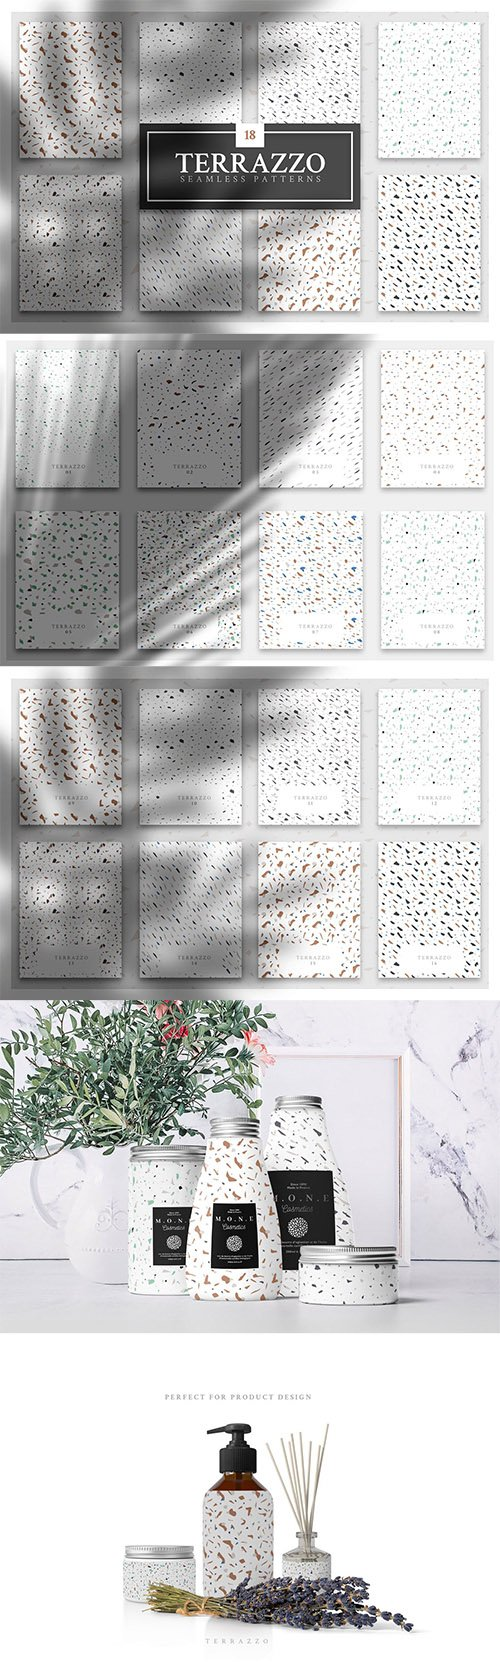 Terrazzo Pattern Collection